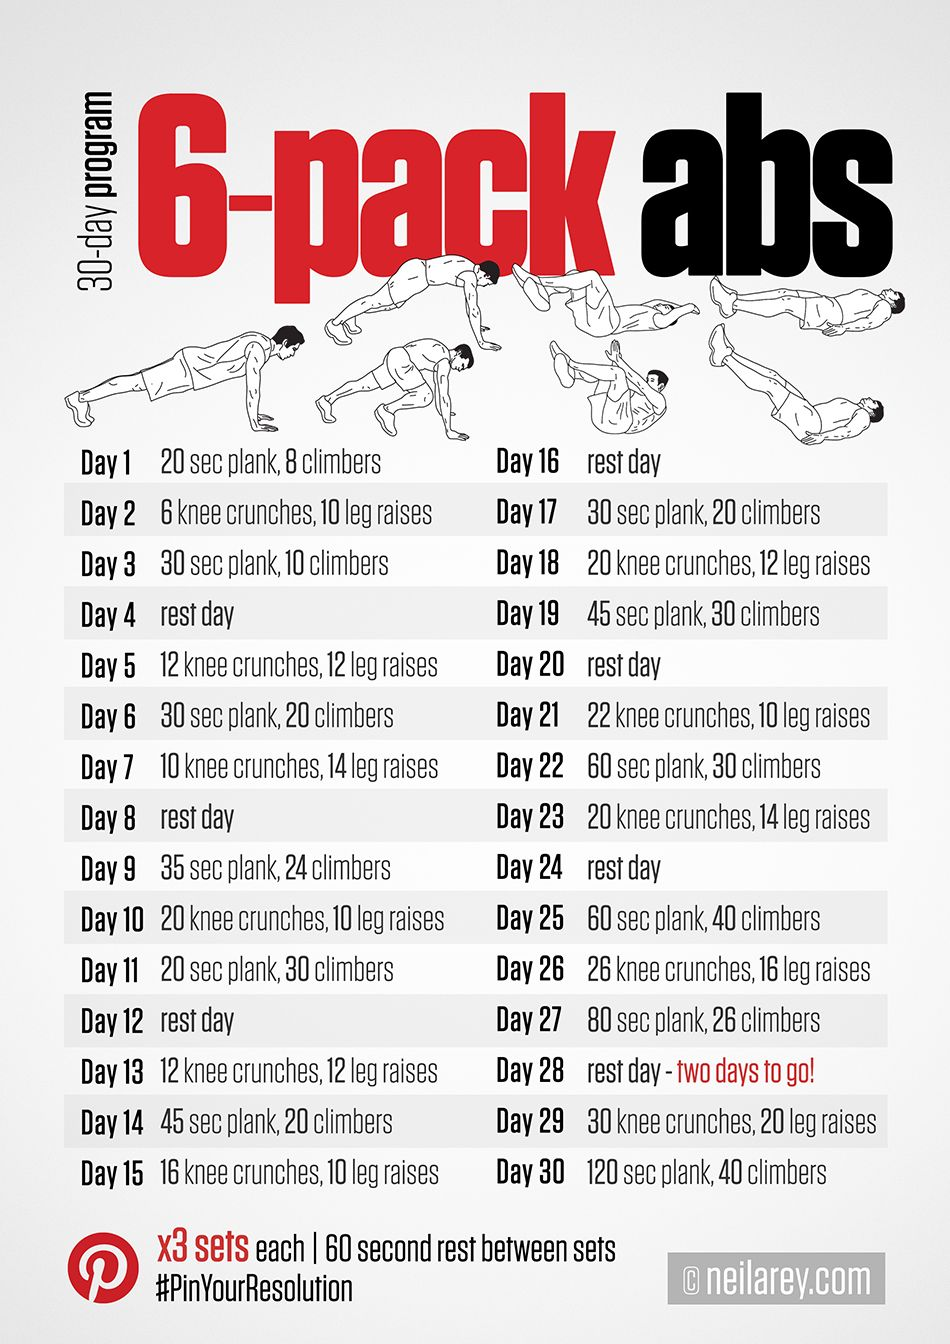 6 Pack Abs For 2014 30 Day Program To Toned Abs X3 Sets Each 60 Seconds Rest Between Sets Fintess Fit2014 Warrior Workout Abs Workout Workout Challenge